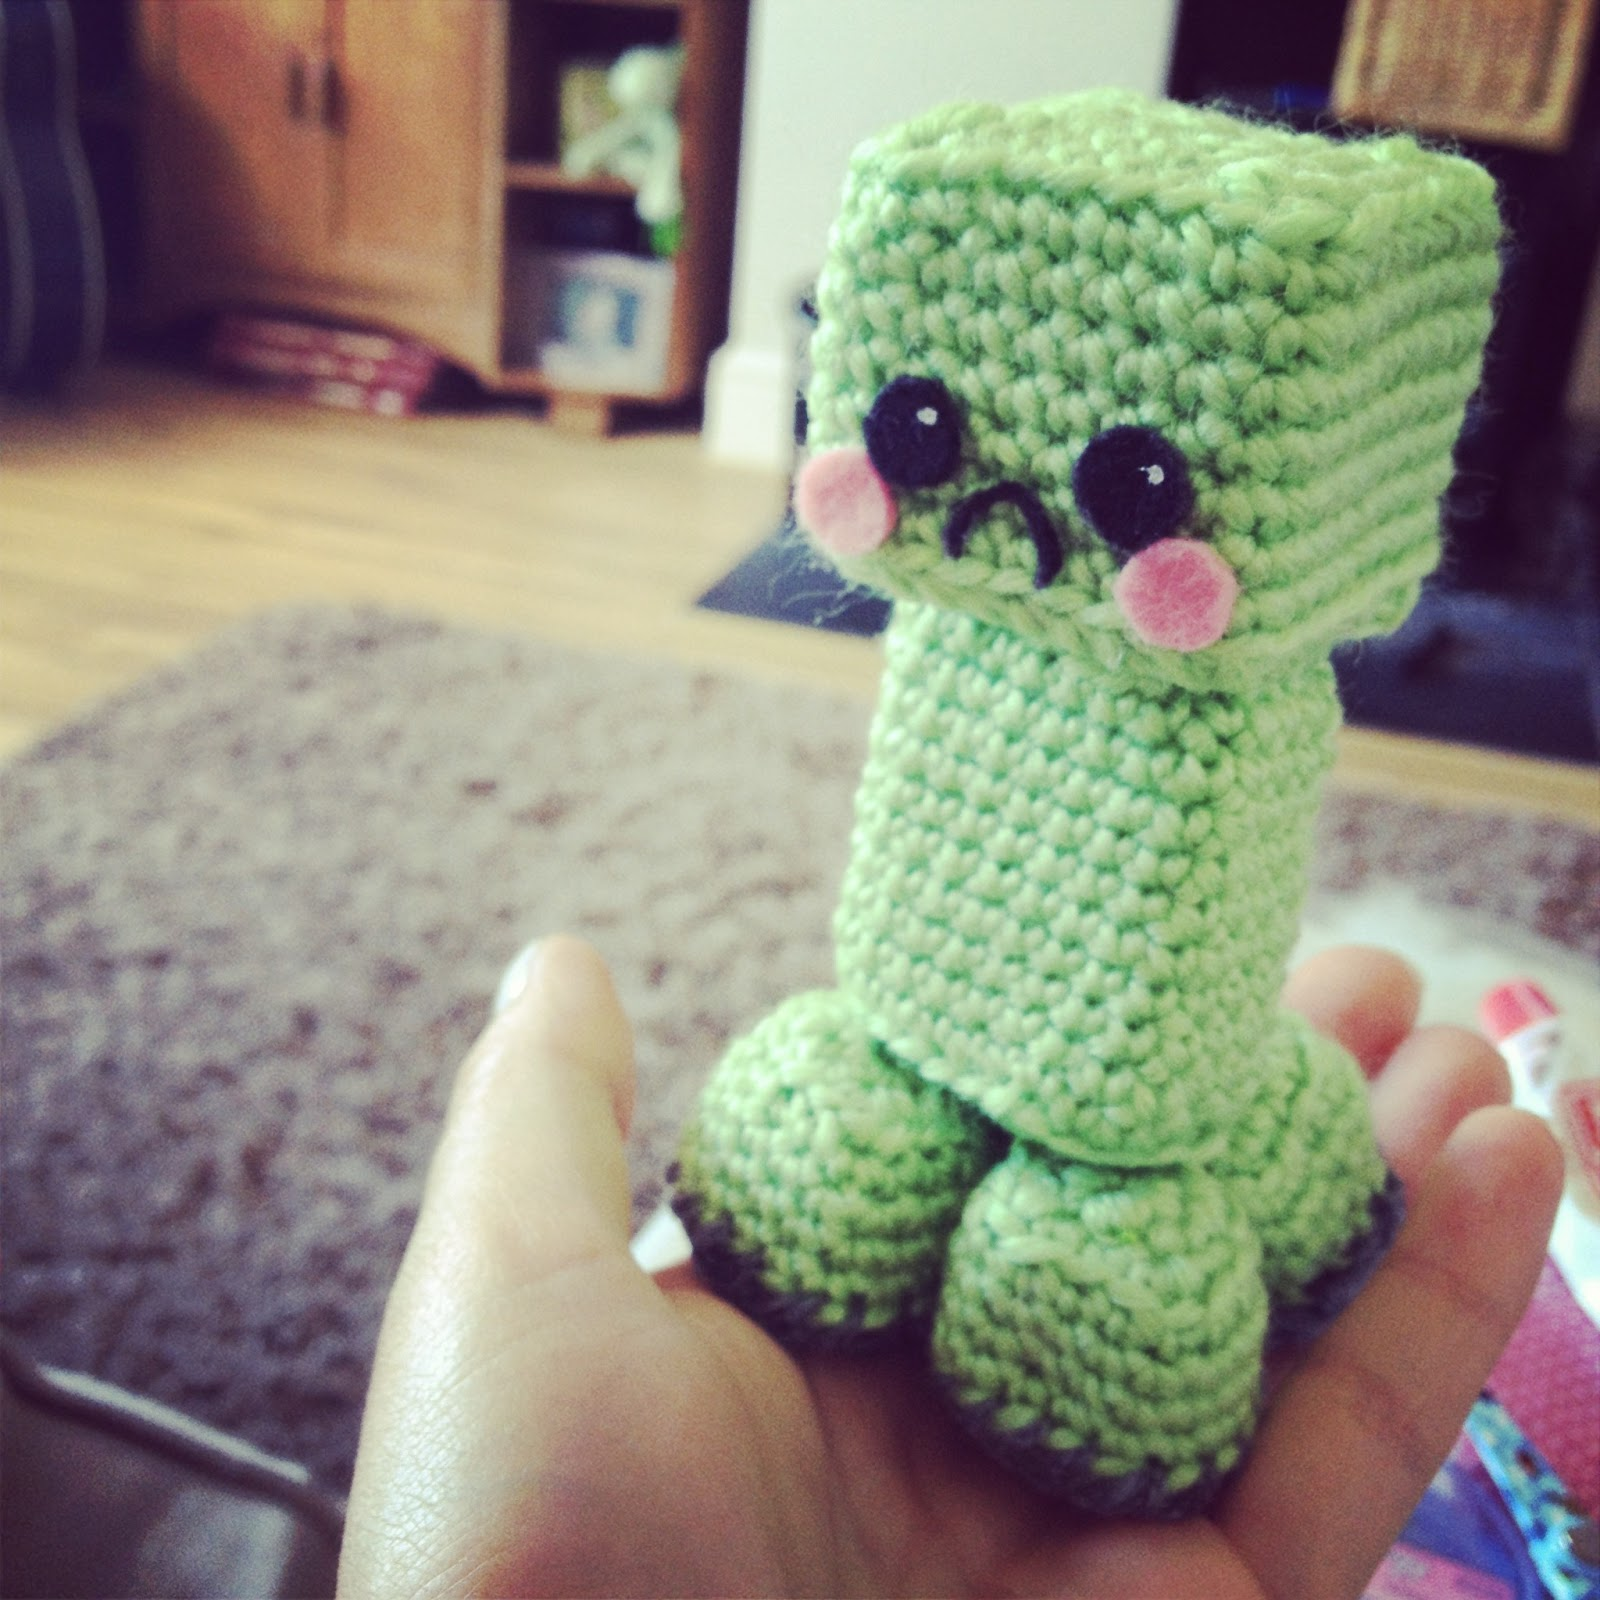 Amigurumi Crochet Patterns Free Doll : Amigurumi crochet creeper ~ Hooked by Robin